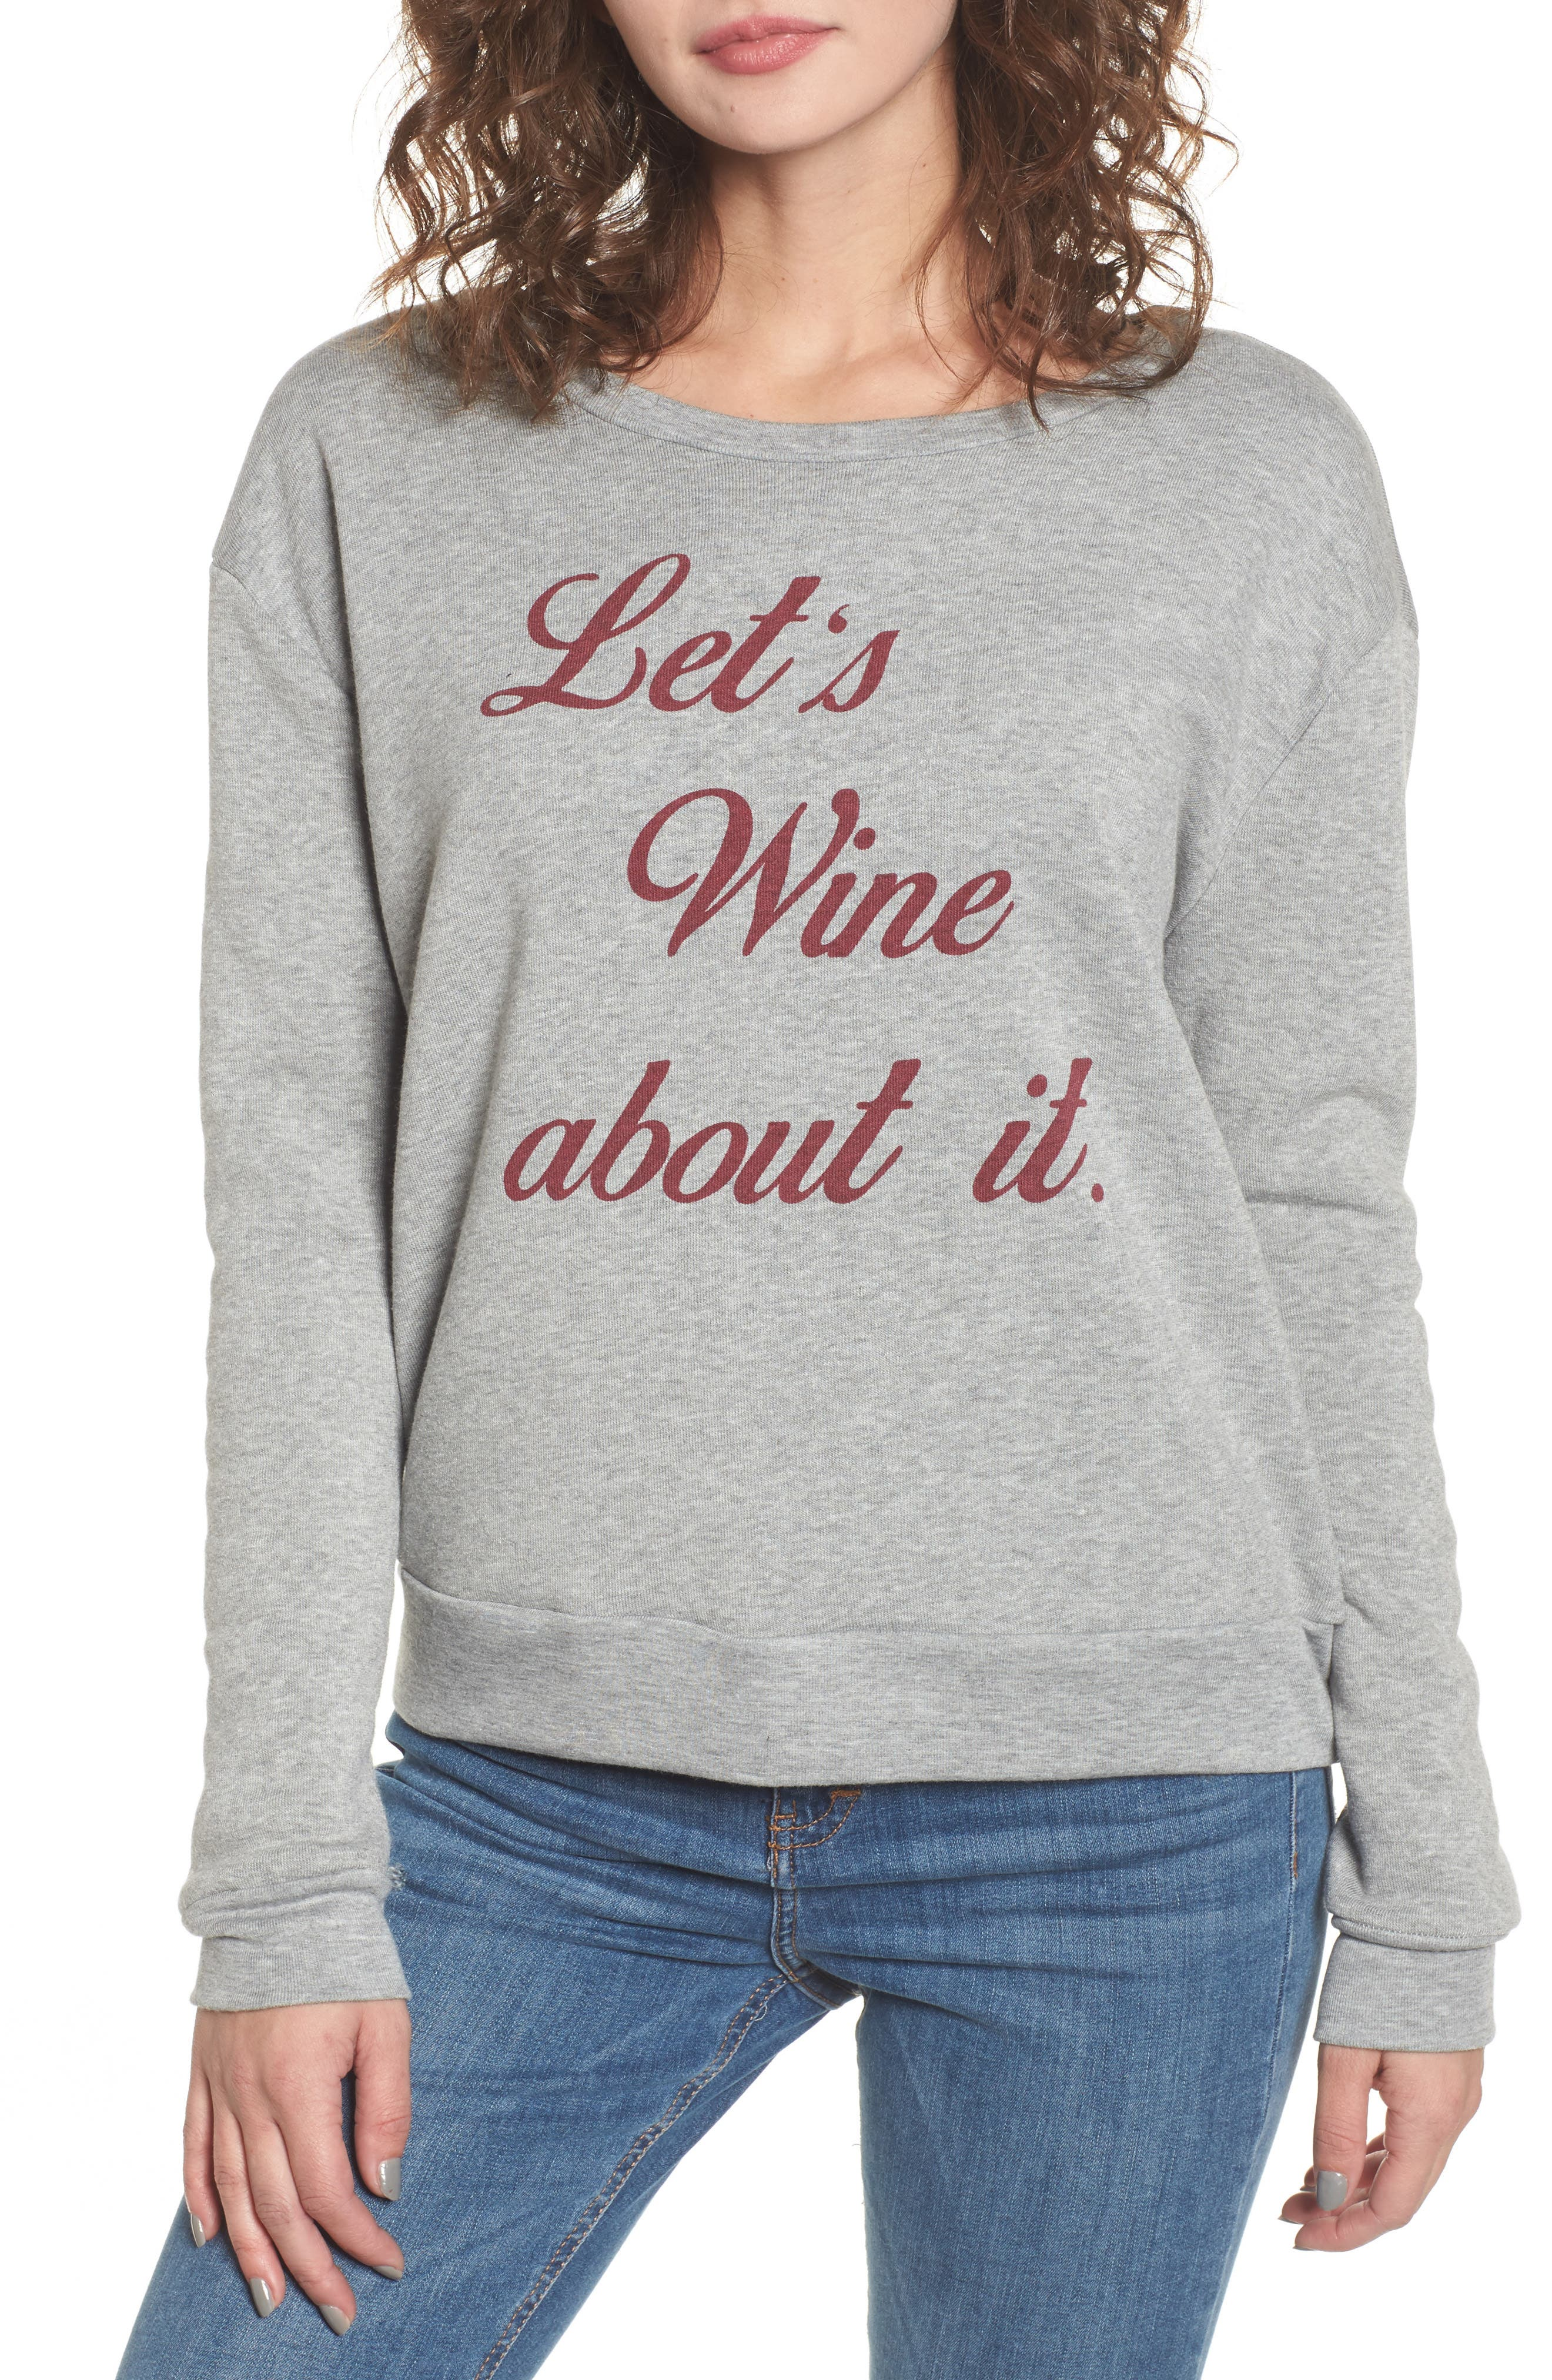 Let's Wine about It Sweatshirt,                             Main thumbnail 1, color,                             Heather Grey